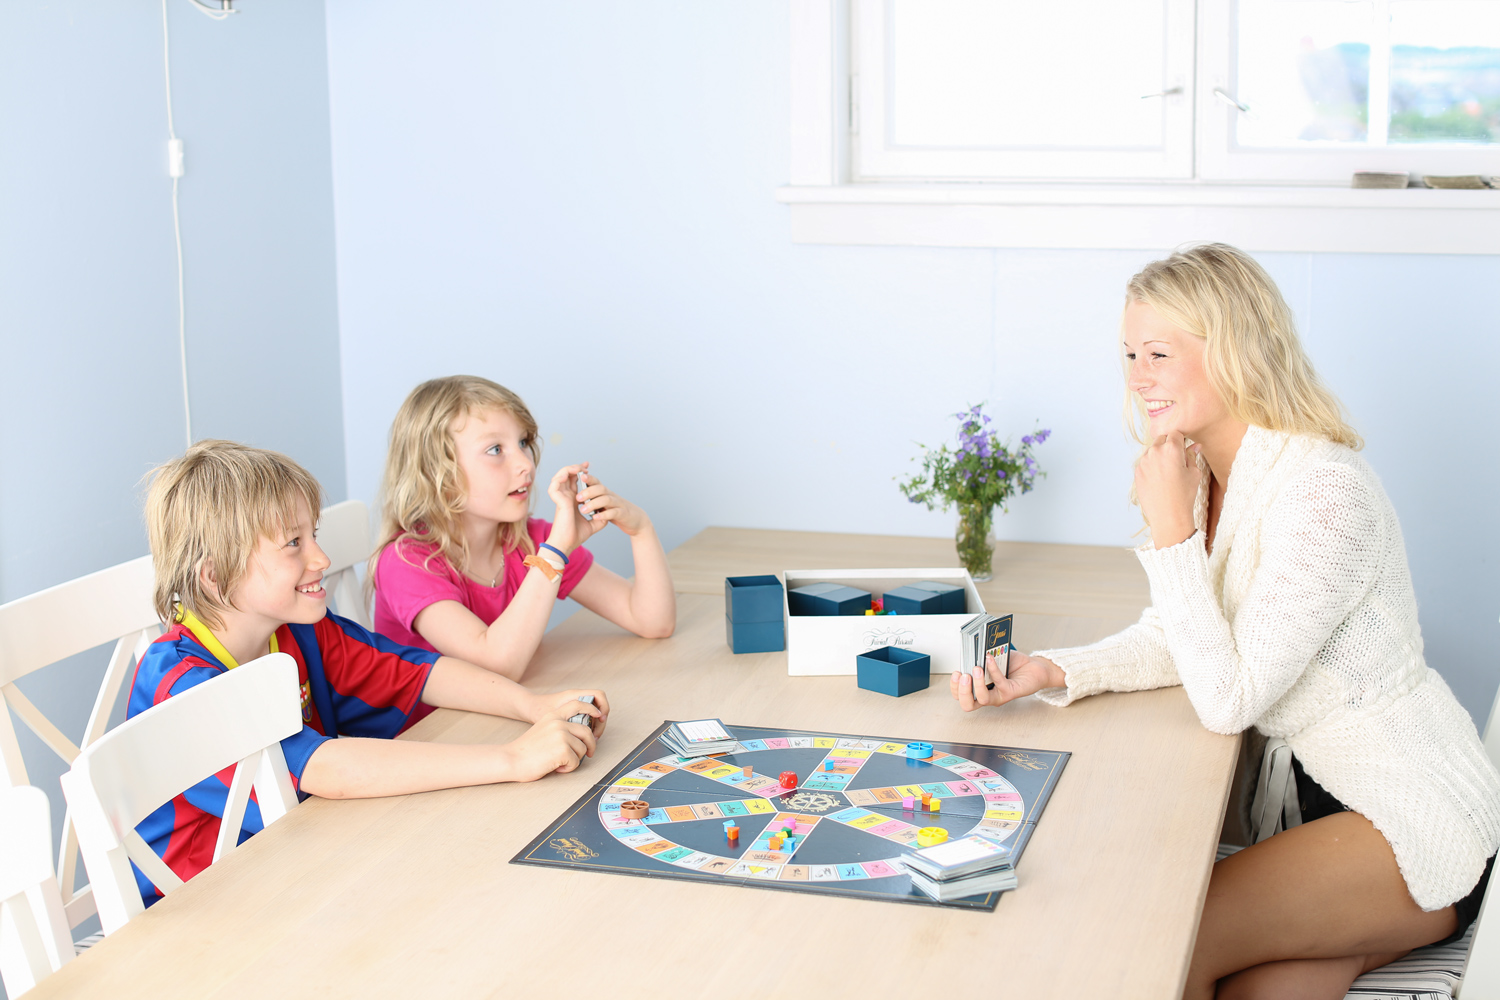 PLAY AND HAVE FUN IN REFERBISHED FACILITIES .Fun and games in a newly furnished living room. It isn't a great summer vacation without friendly feuds around a board game. The living room and dining room (picture) in the house are recently referbished with enough place for everyone to get together.